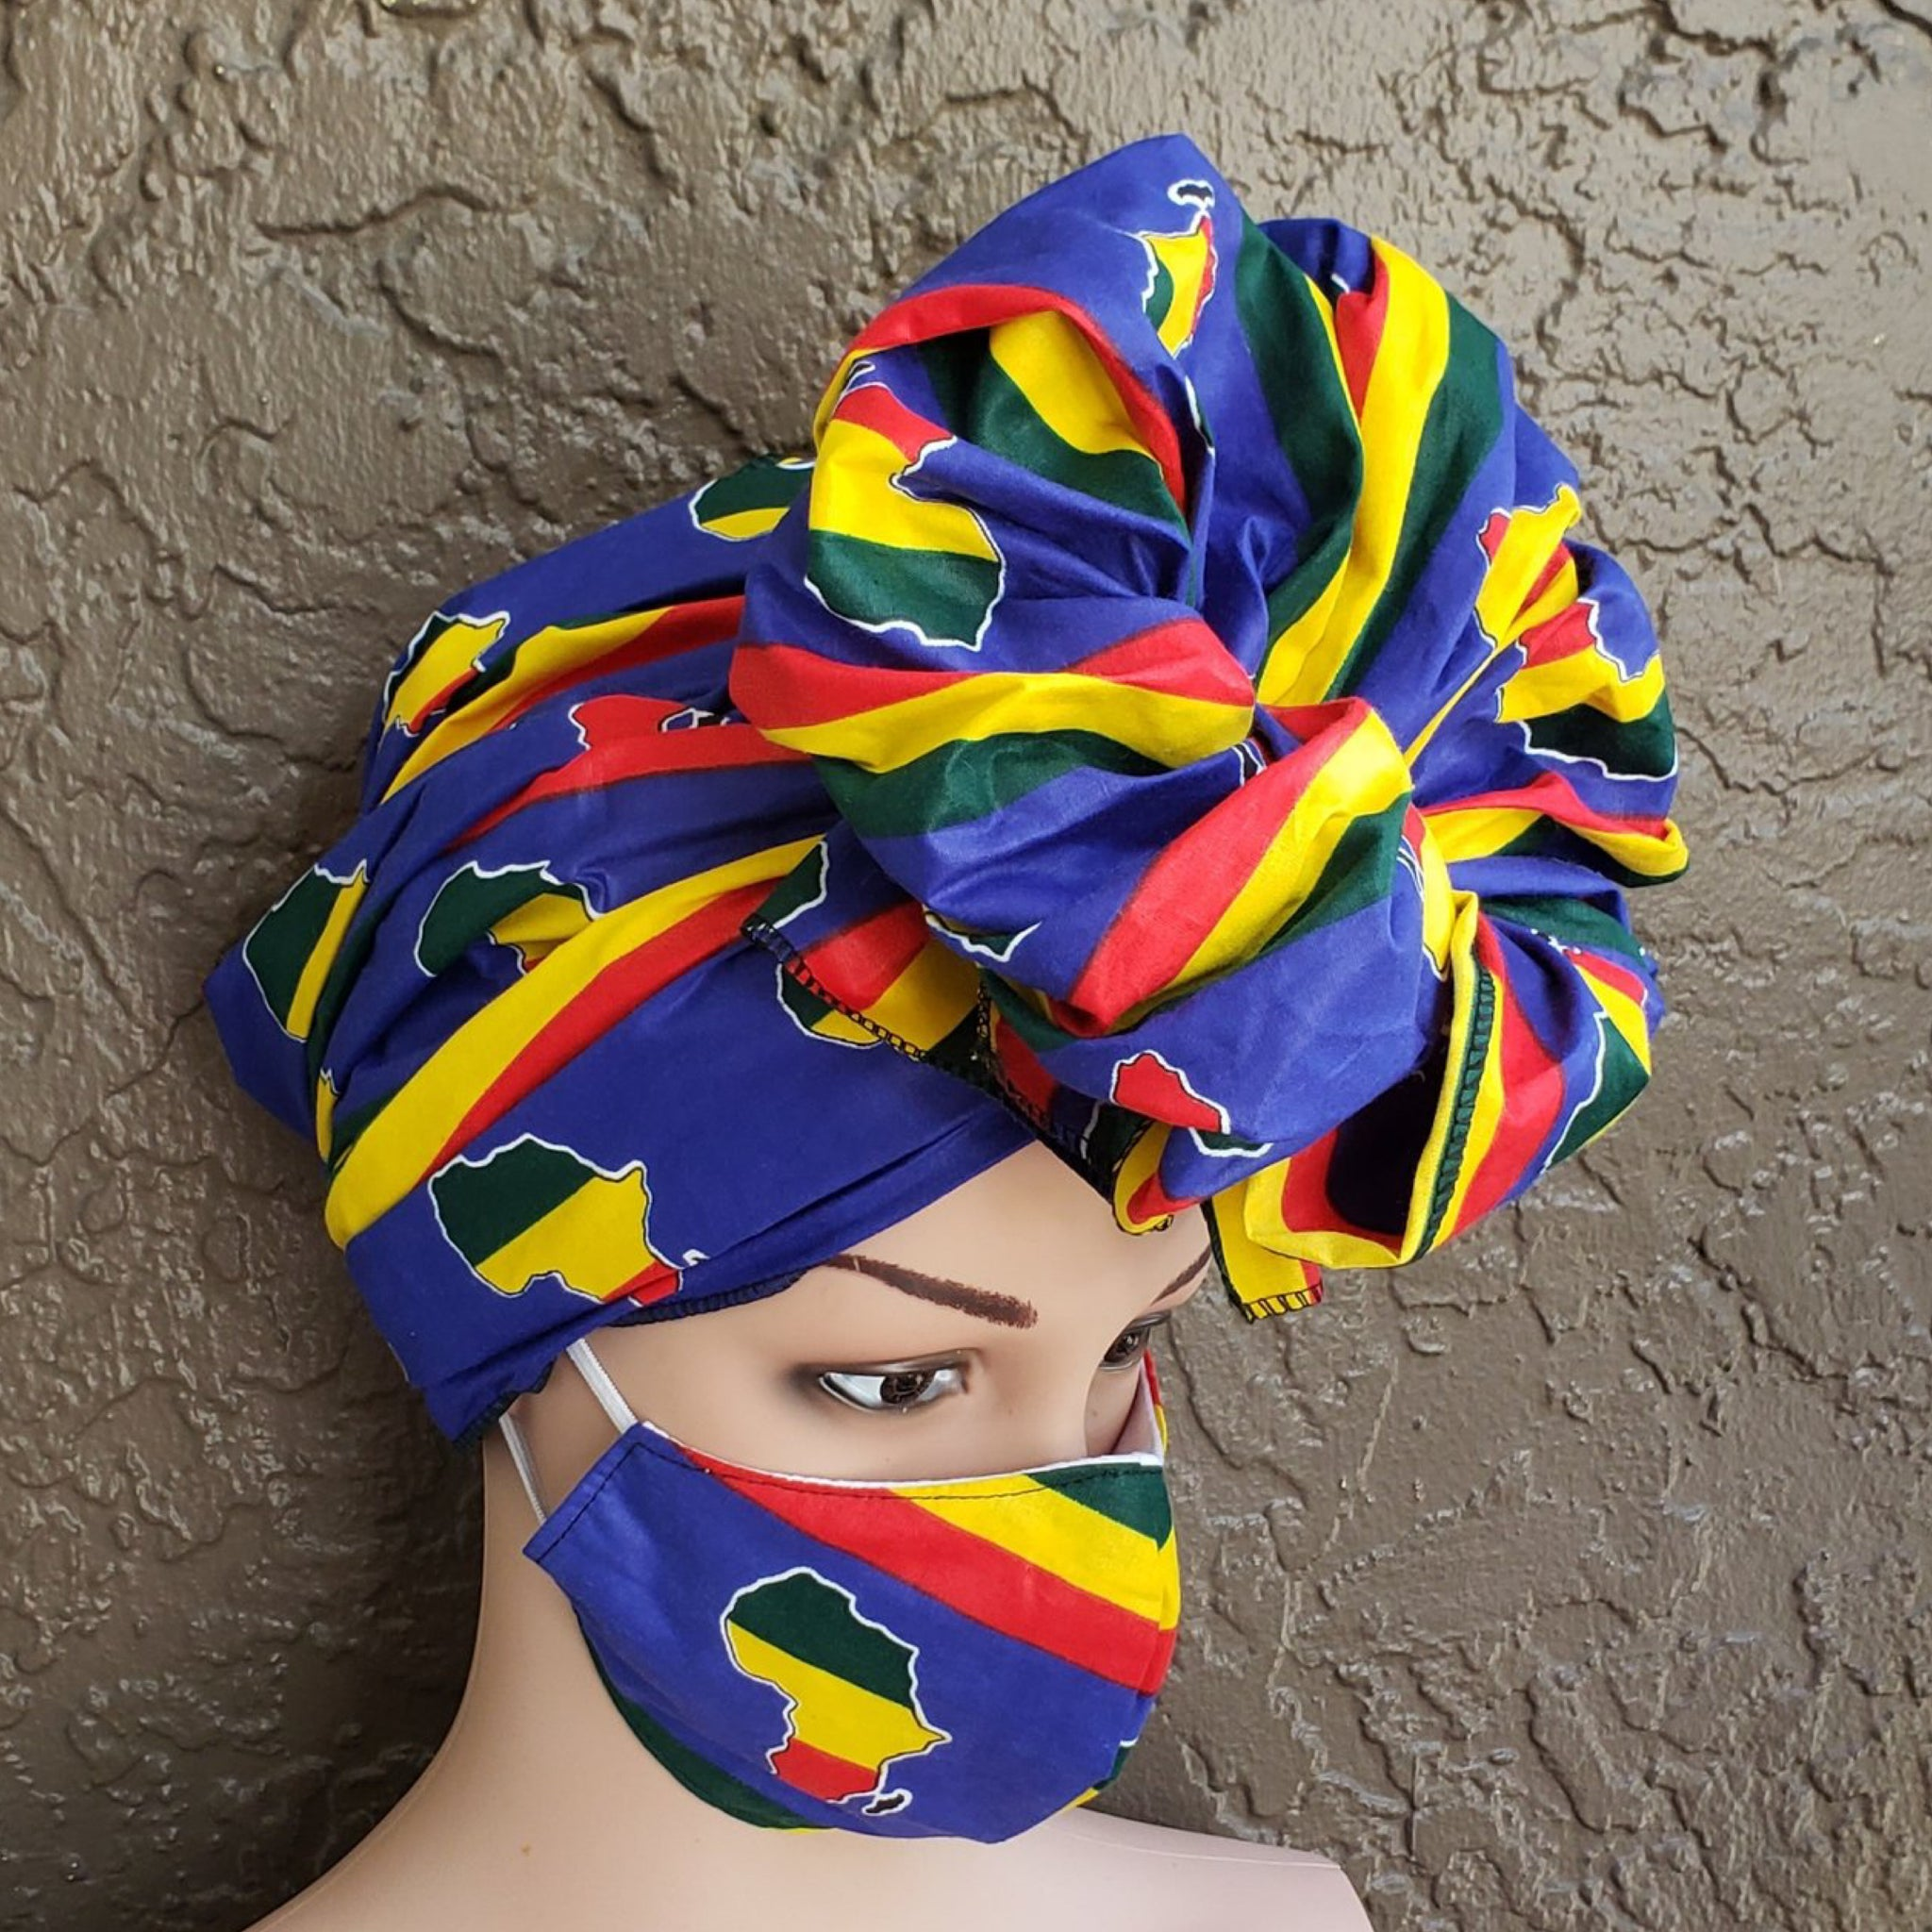 Fashion African Print Mask and Full Headwrap Blue Red Yellow